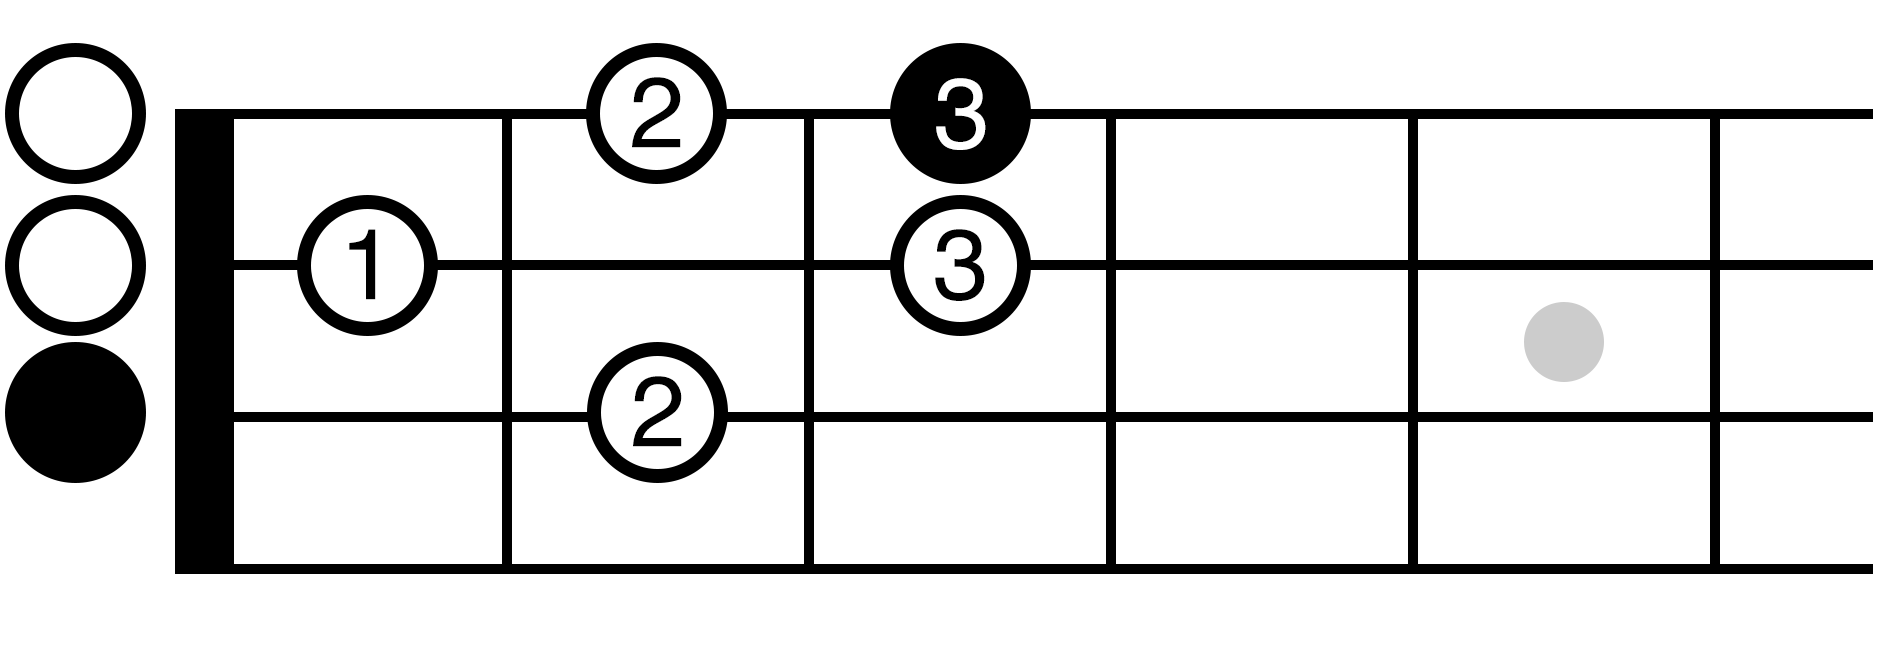 C Major Scale Position 1 Ukulele Fretboard Diagram